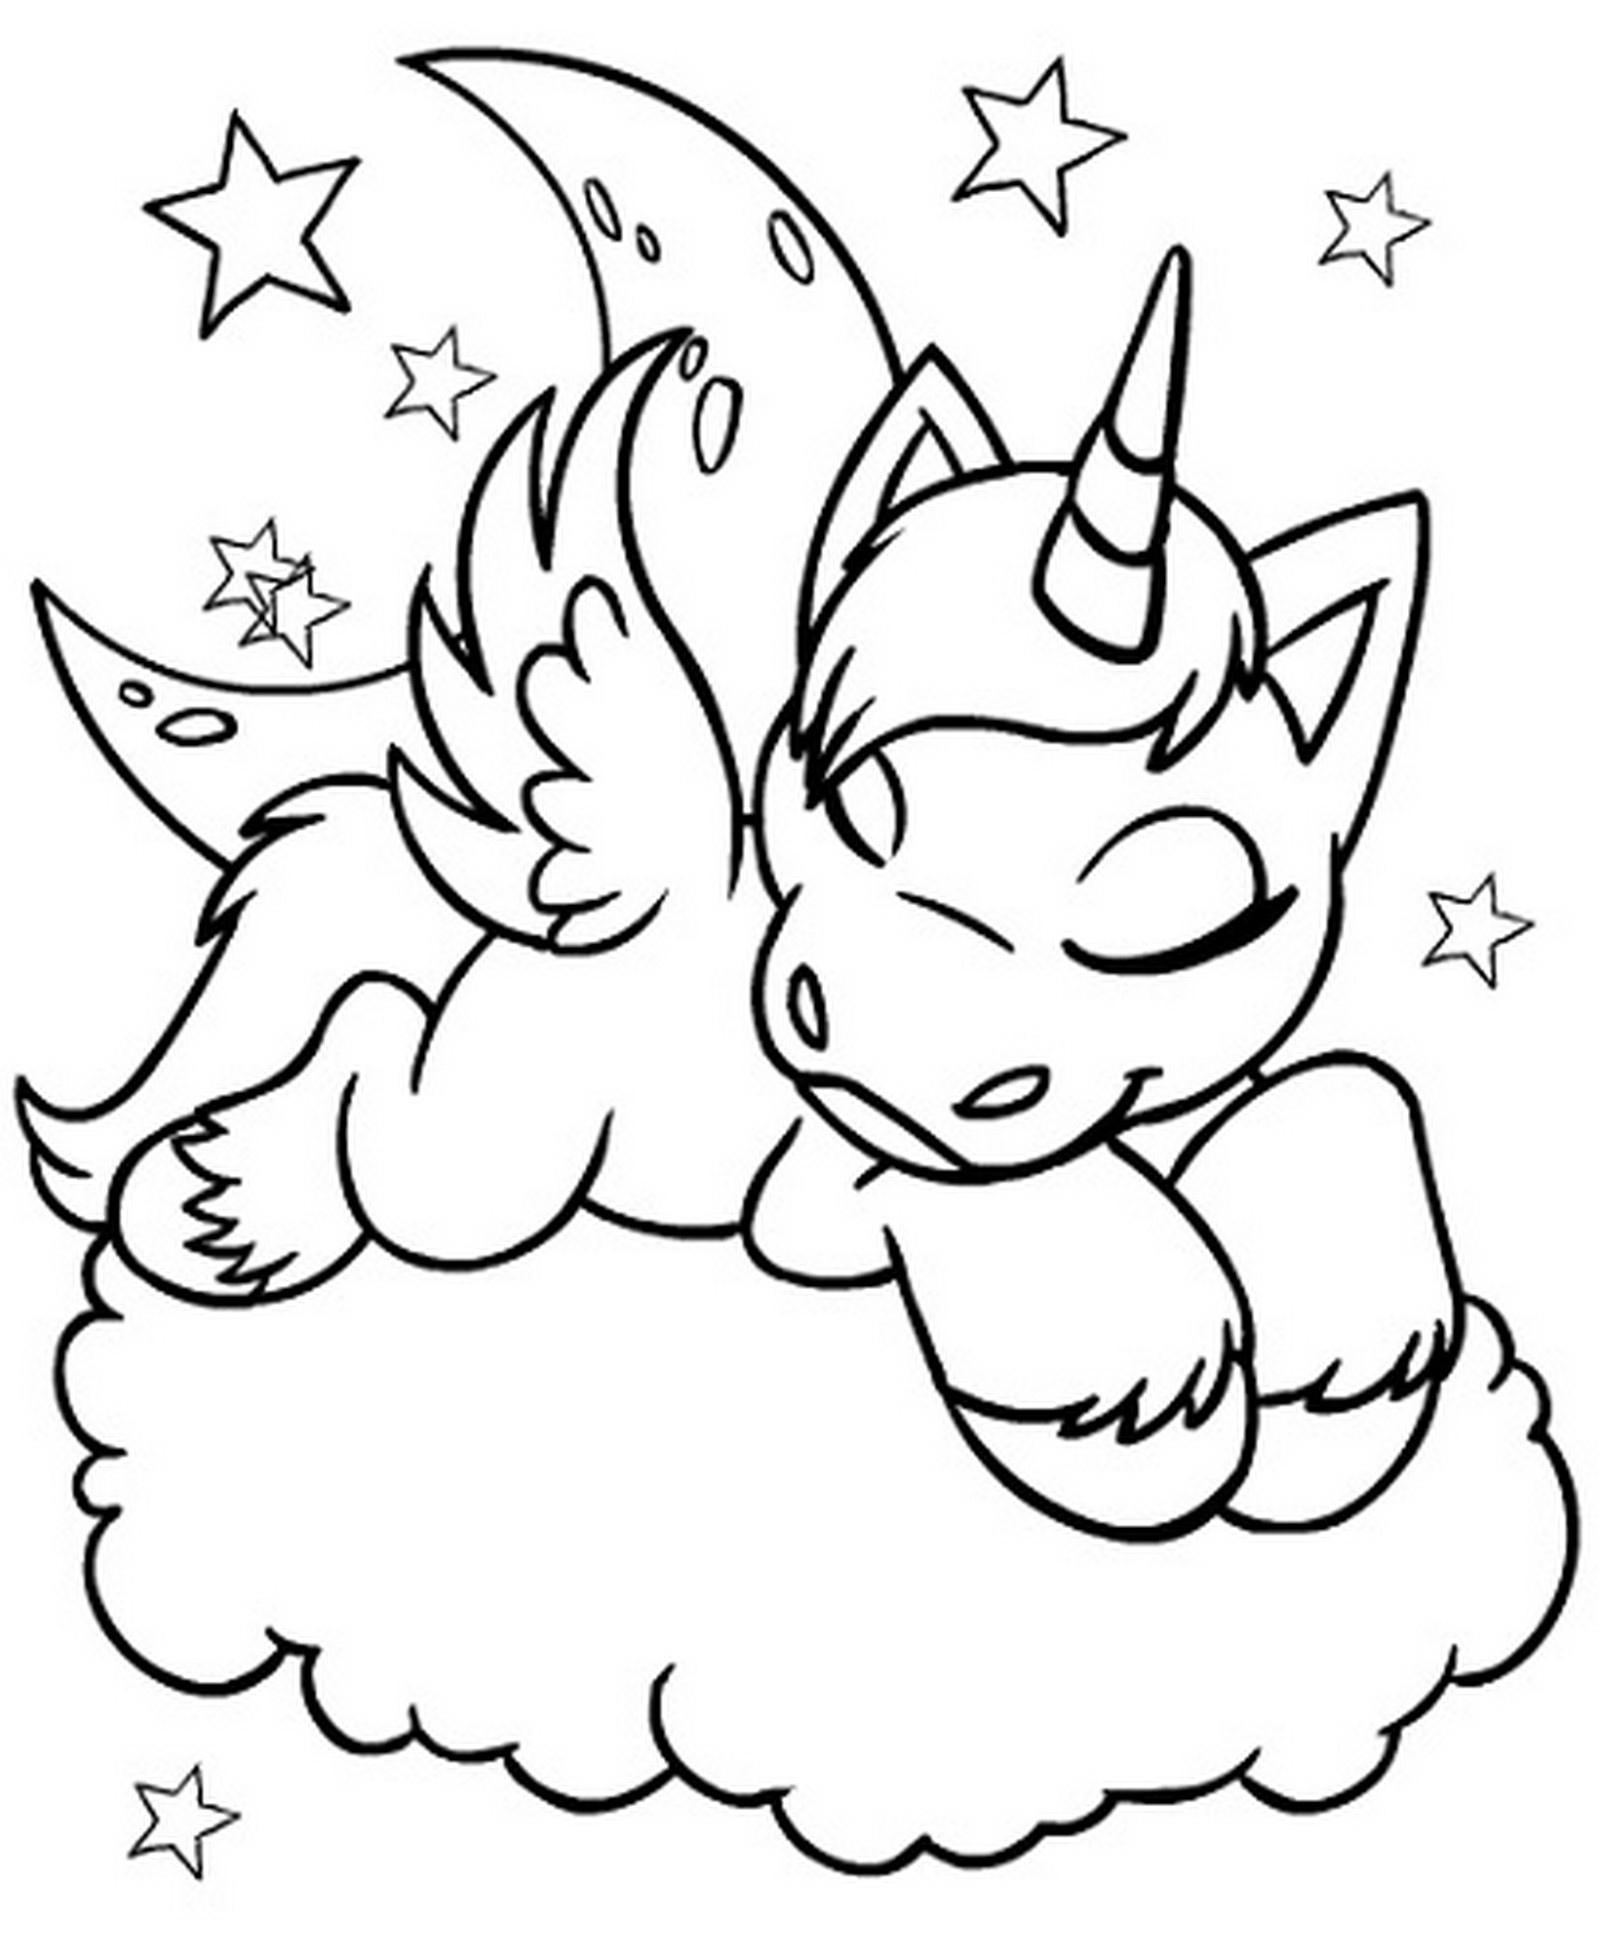 coloring pictures of unicorns downloadable unicorn colouring page michael o39mara books unicorns coloring pictures of